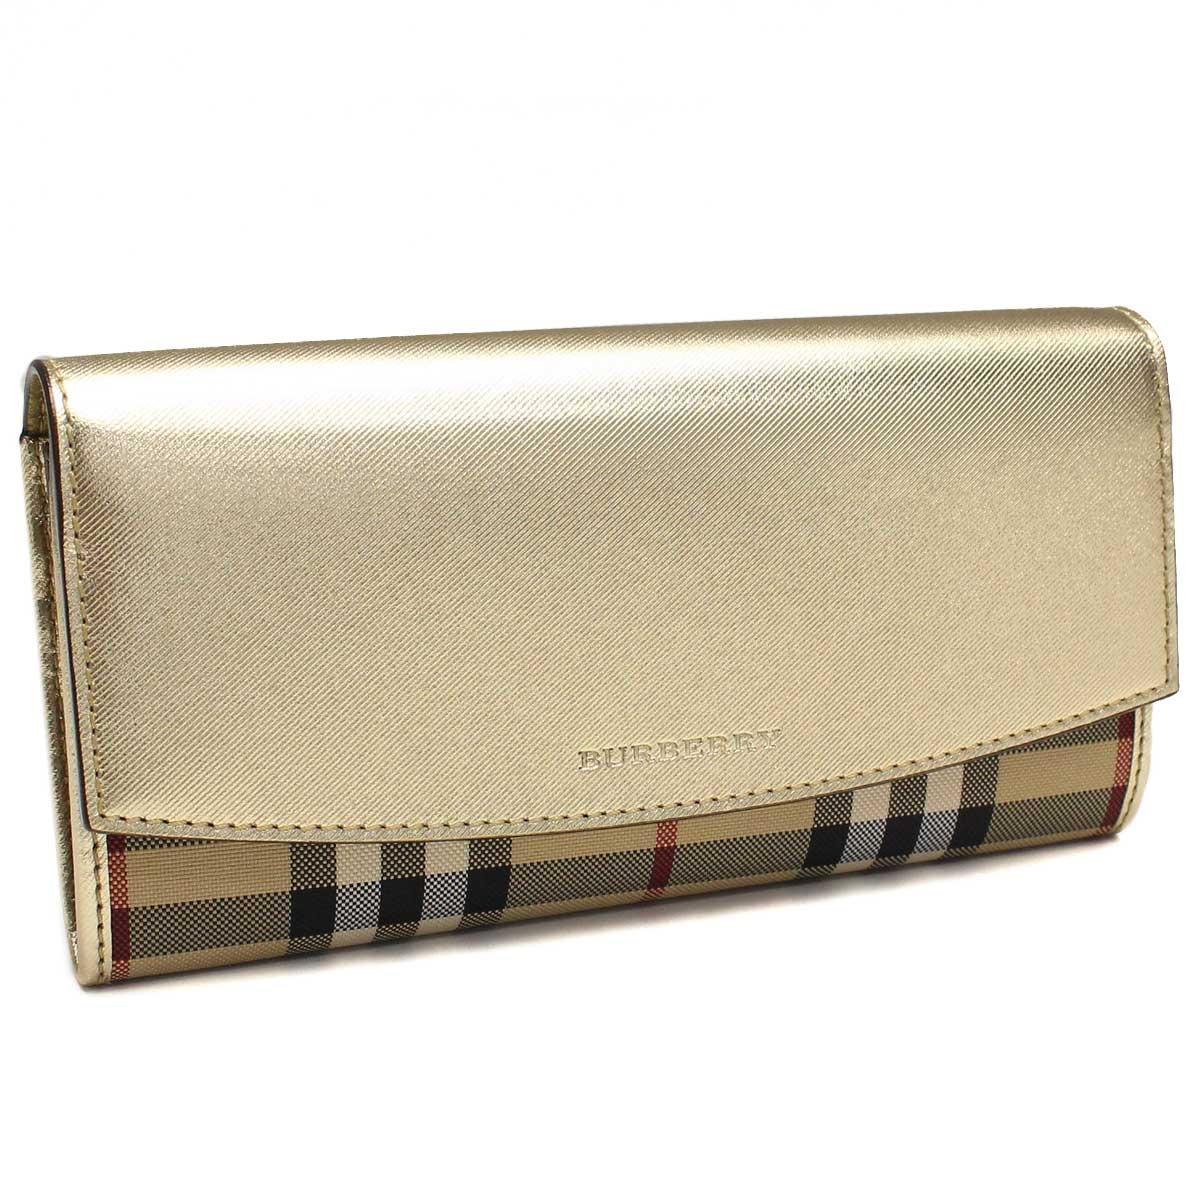 e0868d1ffcb1 Bighit The total brand wholesale  Burberry (BURBERRY) wallet bi-fold coin  3996737 GOLD gold series multicolor coin purse (wallet).